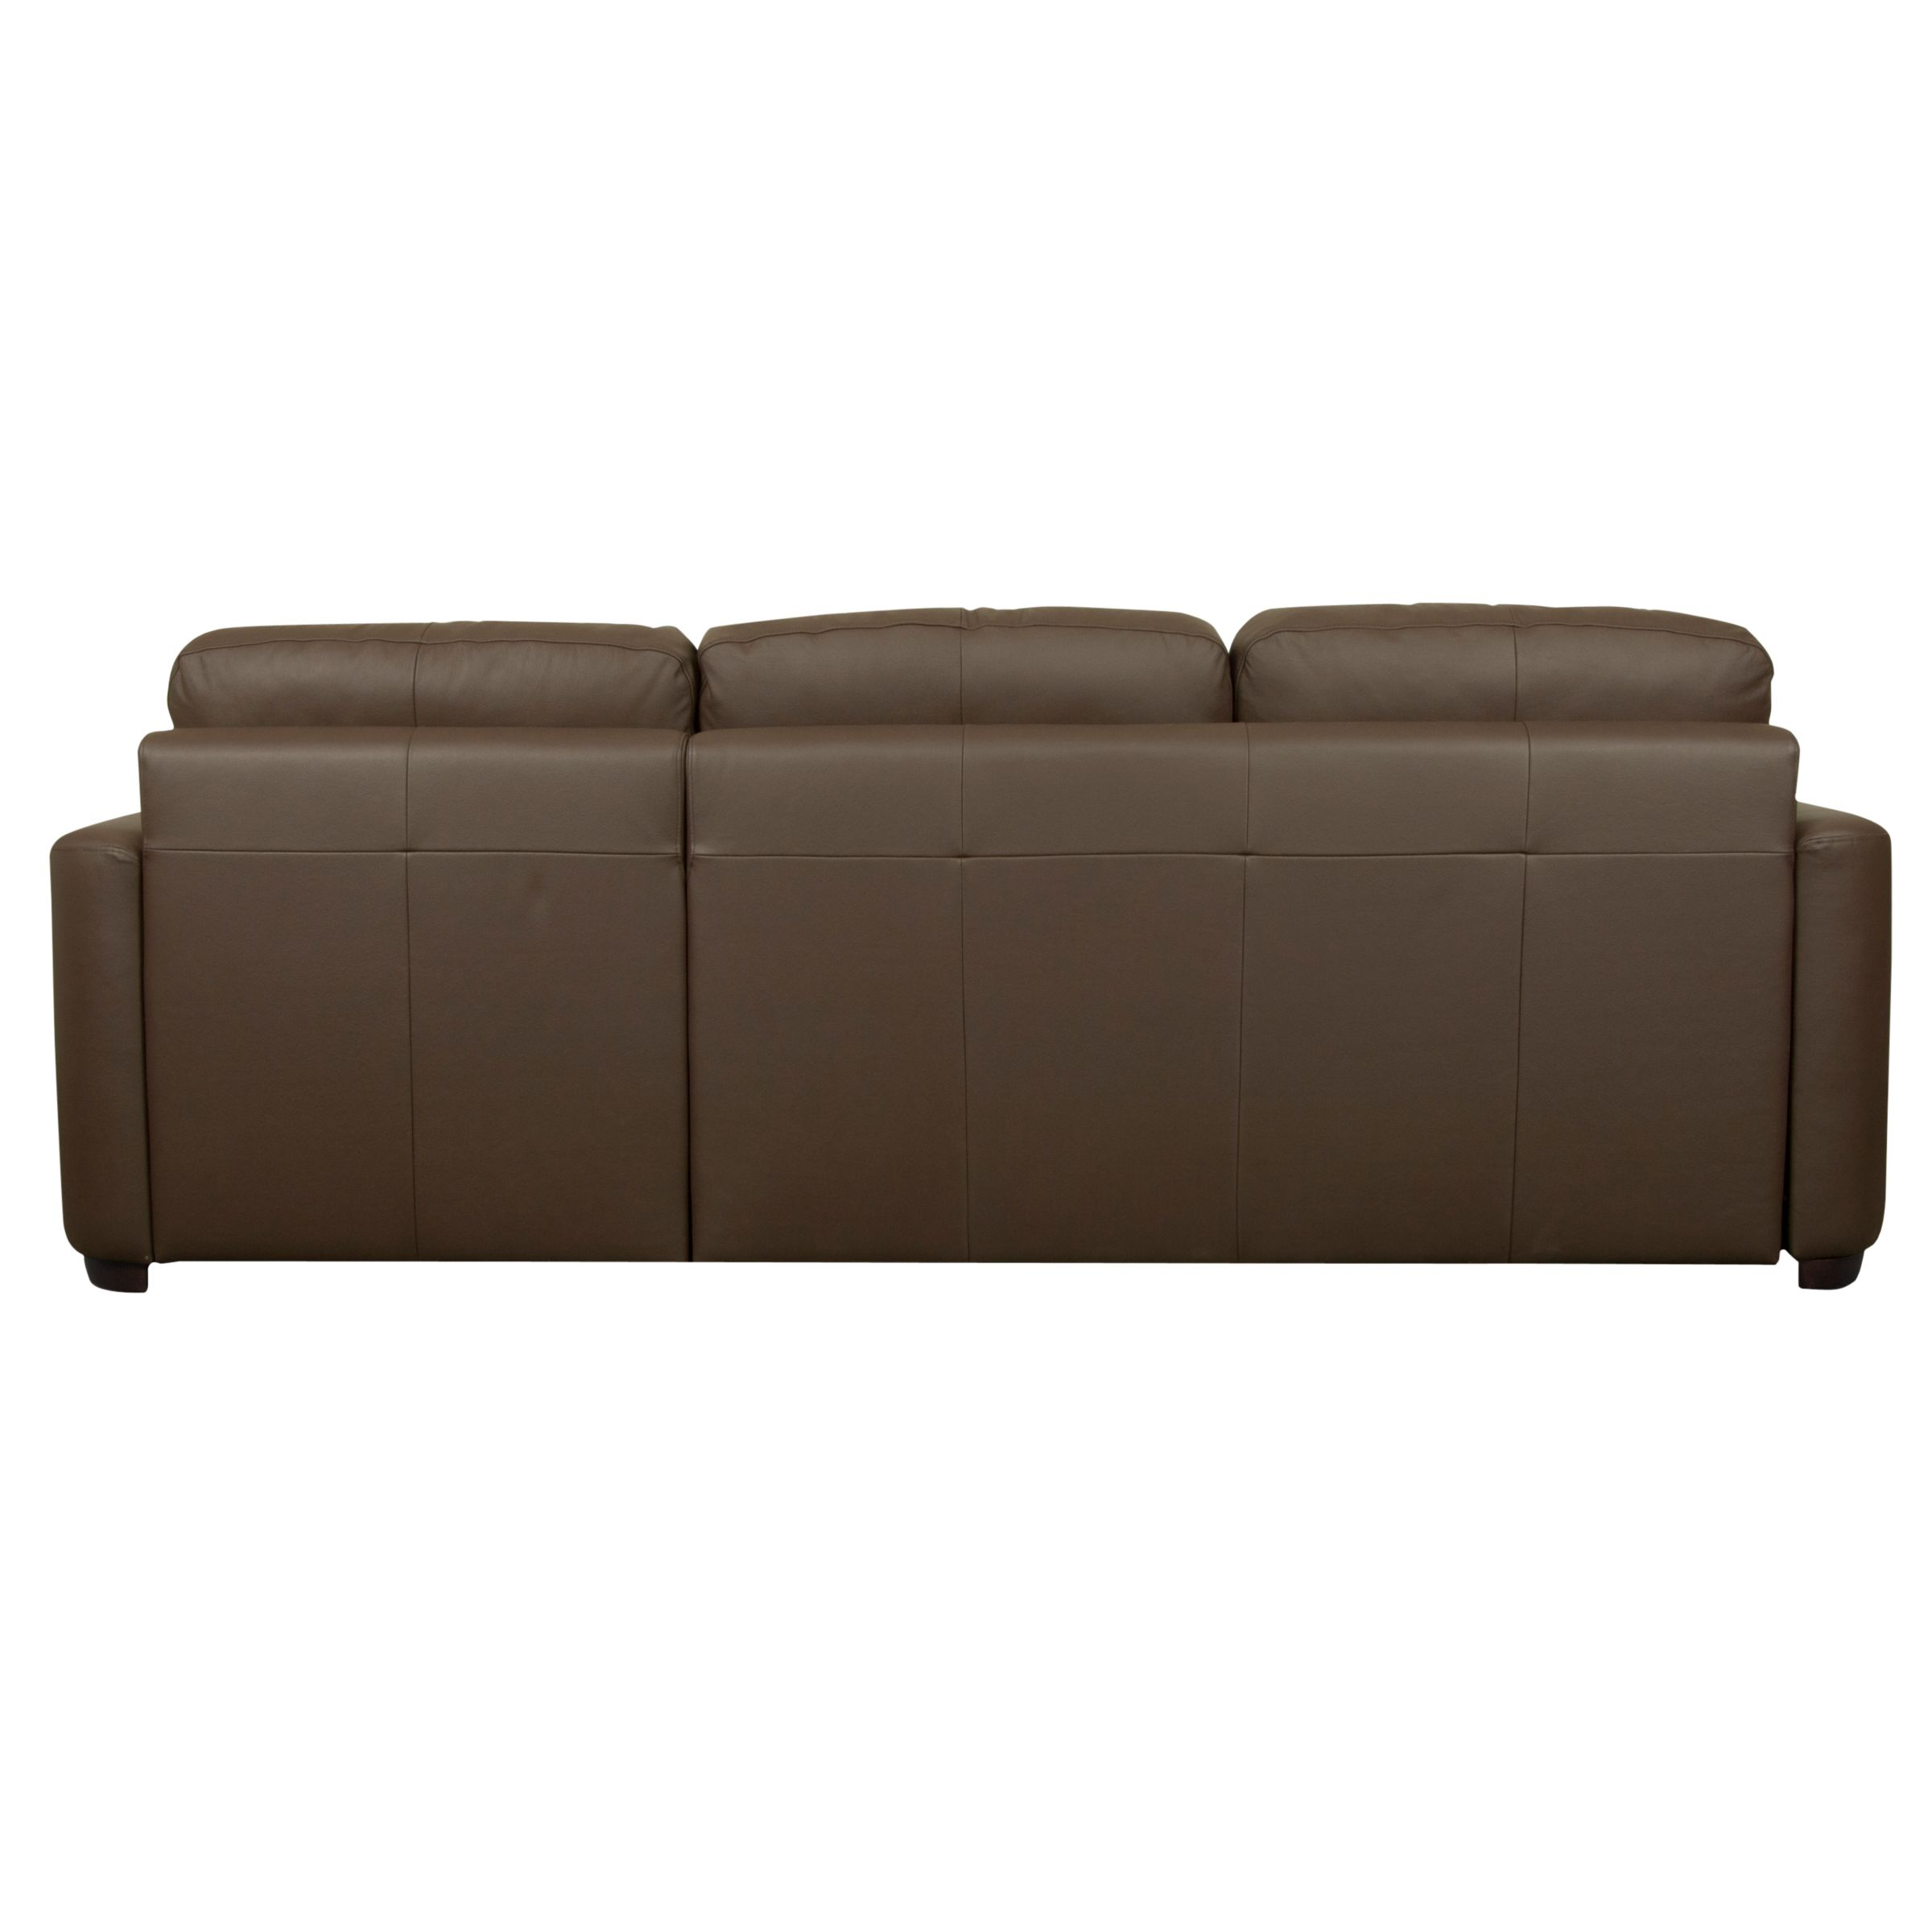 sacha large leather sofa bed madras chocolate italsofa natuzzi john lewis with foam mattress